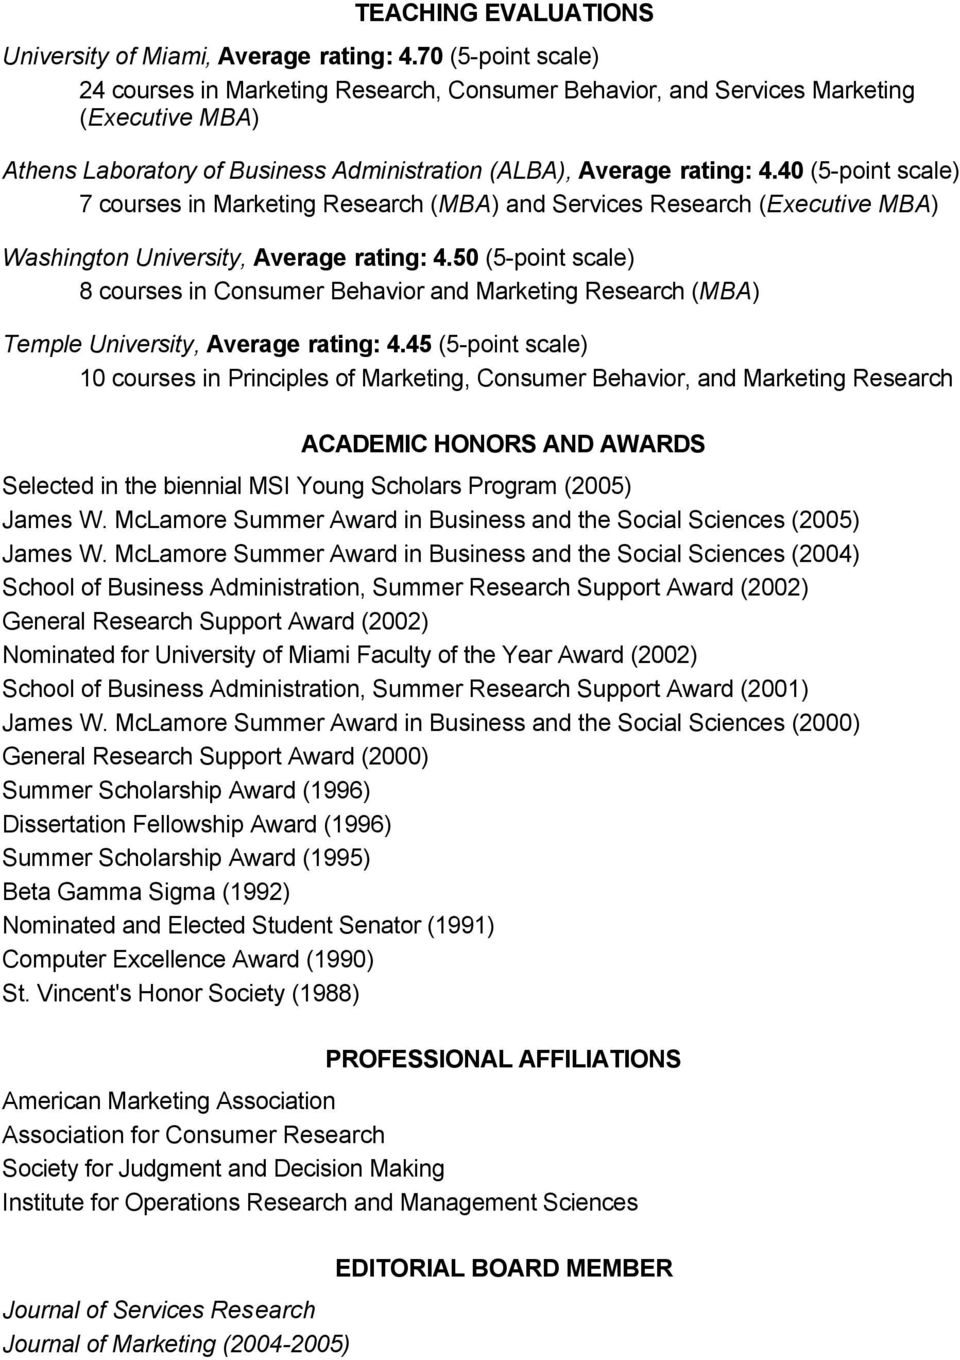 40 (5-point scale) 7 courses in Marketing Research (MBA) and Services Research (Executive MBA) Washington University, Average rating: 4.